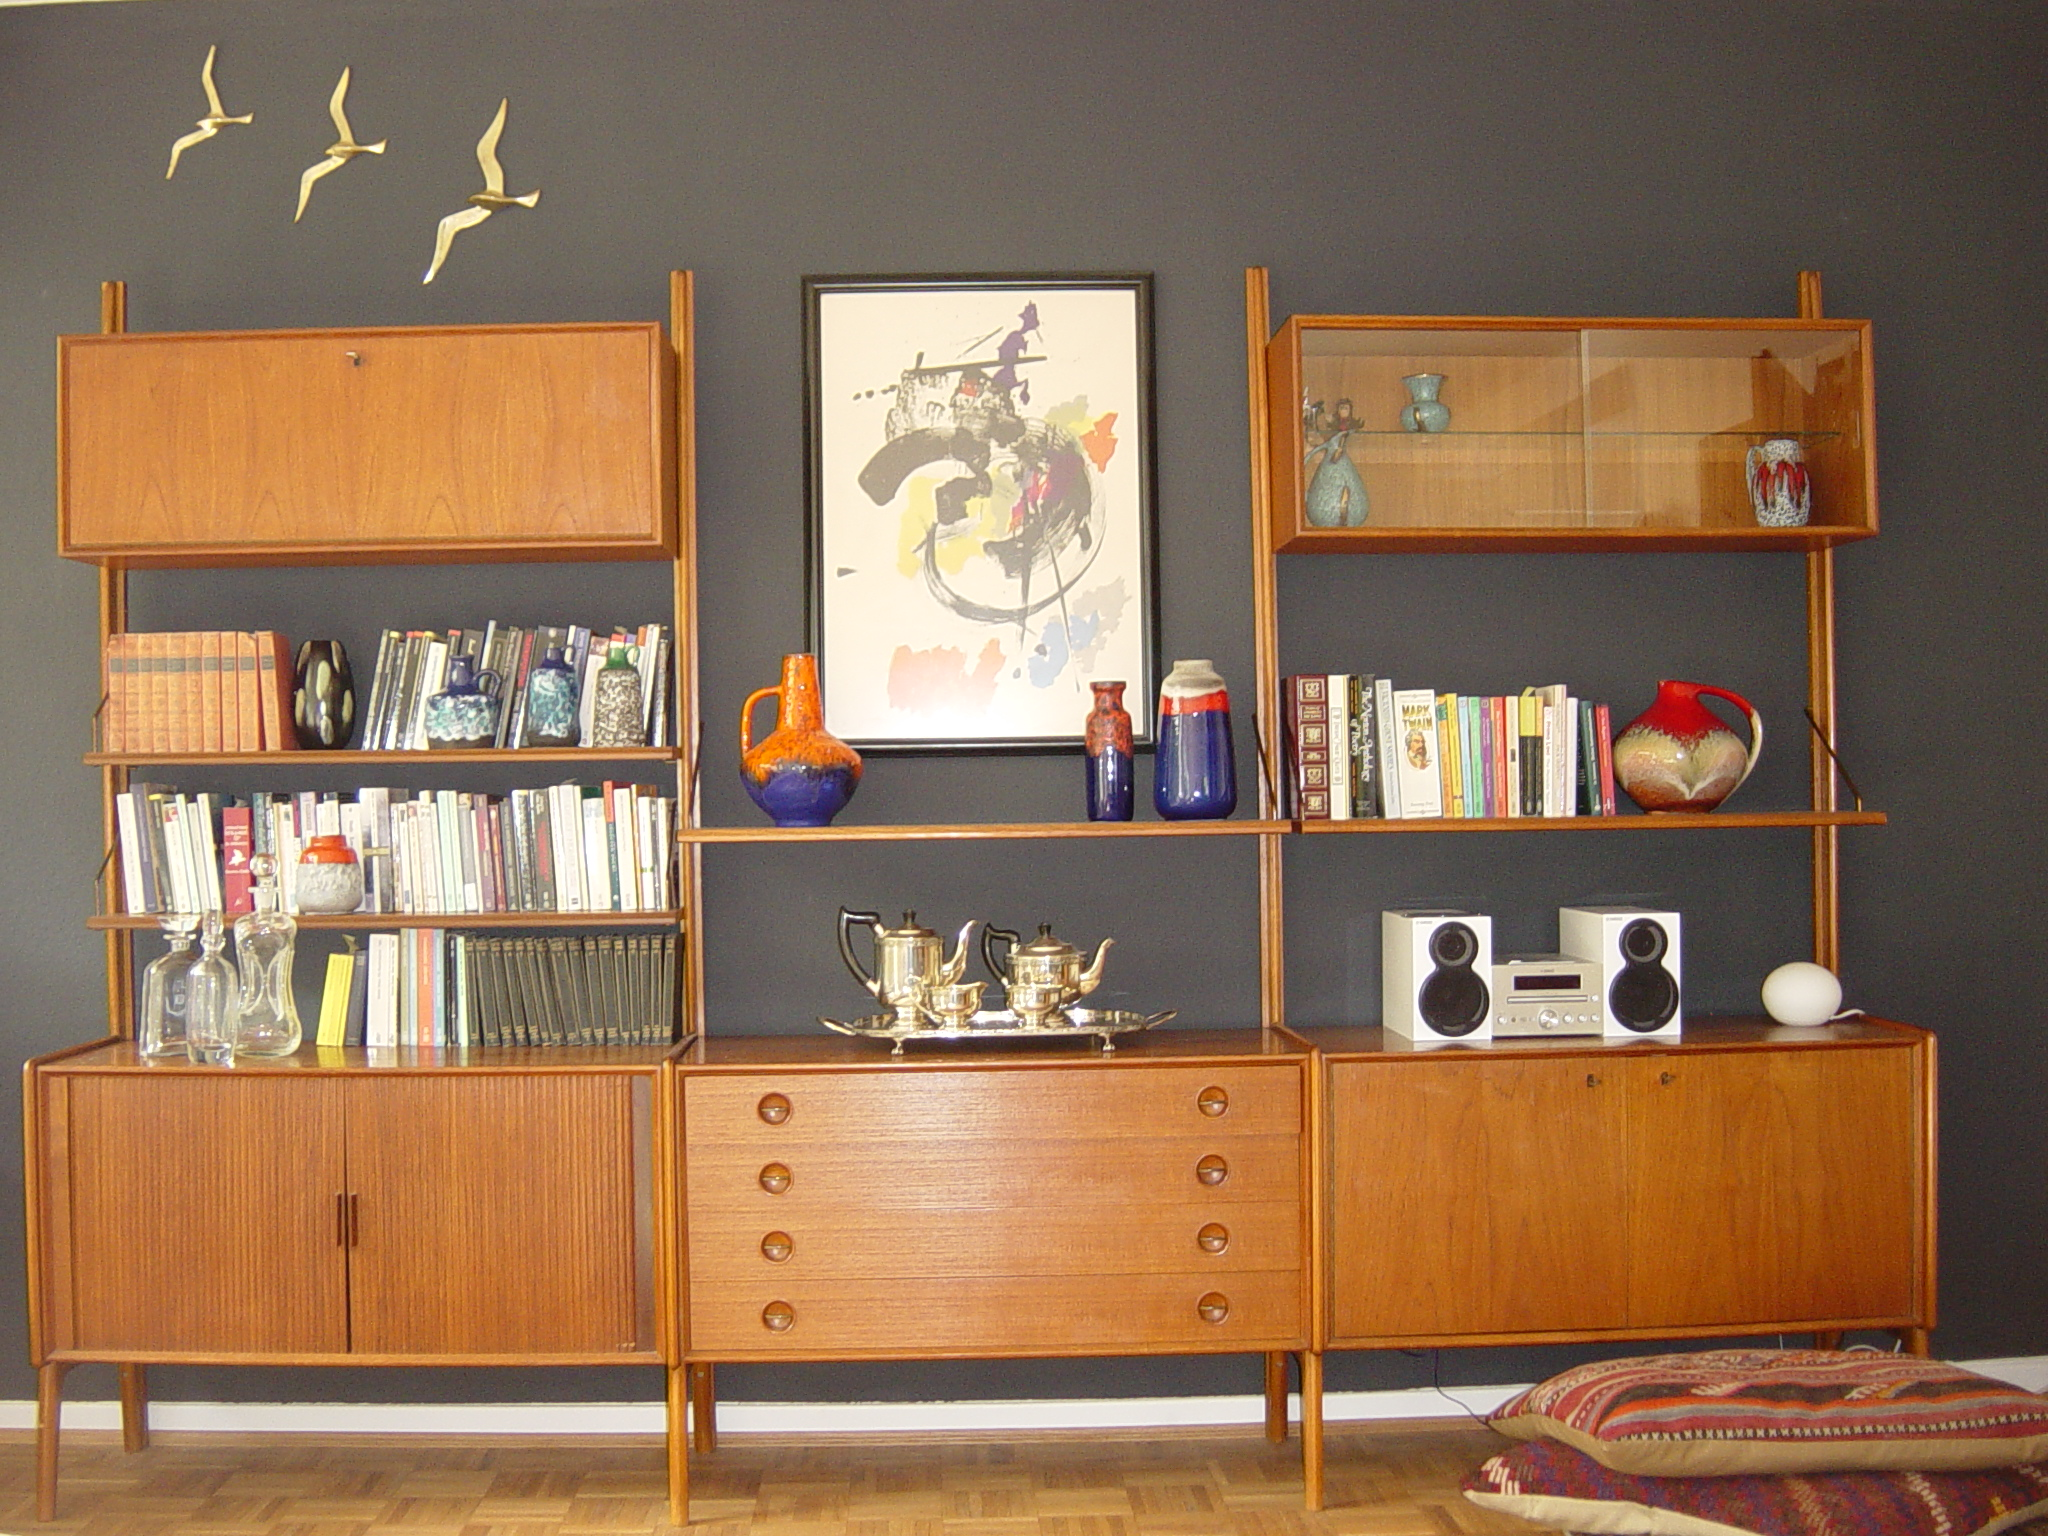 cadovius-style-shelf-and-dining-area-sept-2011-011.jpg